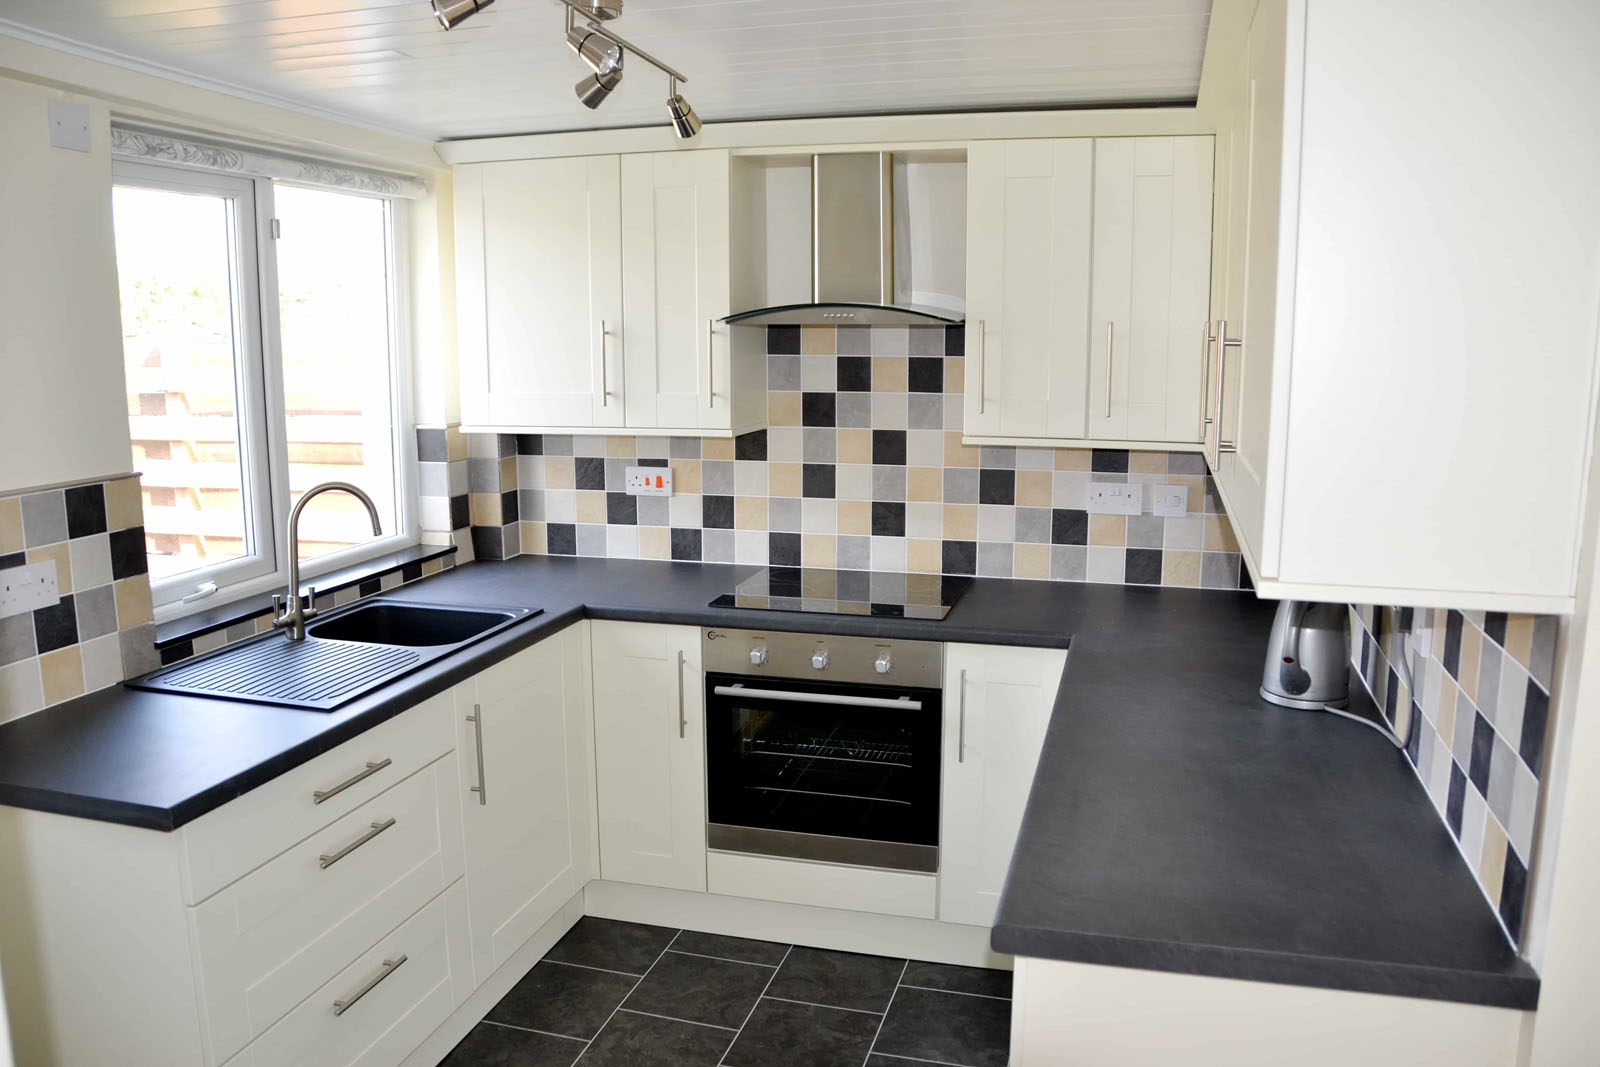 Affordable kitchen installation and design